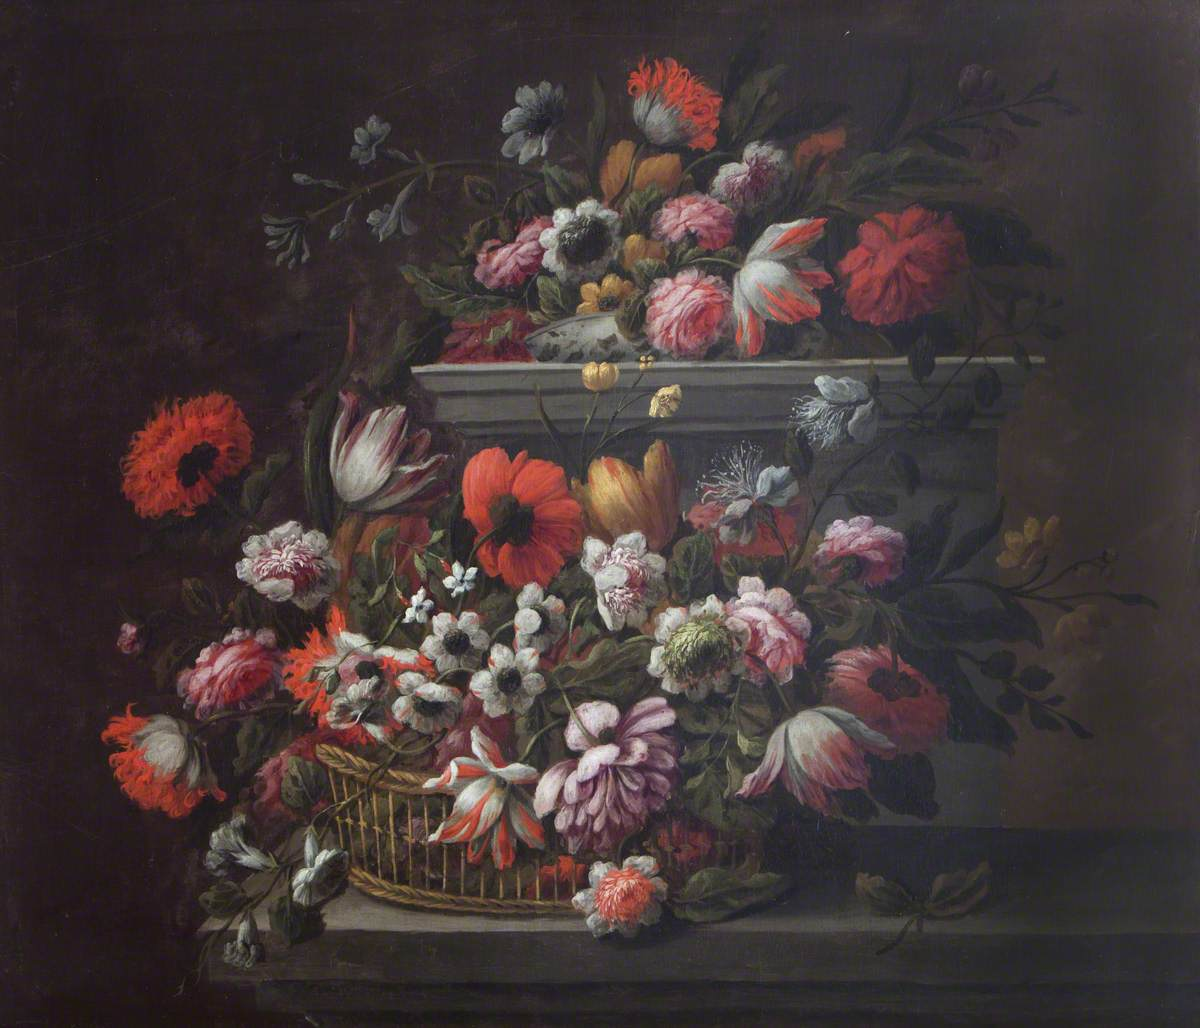 Tulips, Poppies, Roses and Other Flowers in a Basket, and a Porcelain Bowl